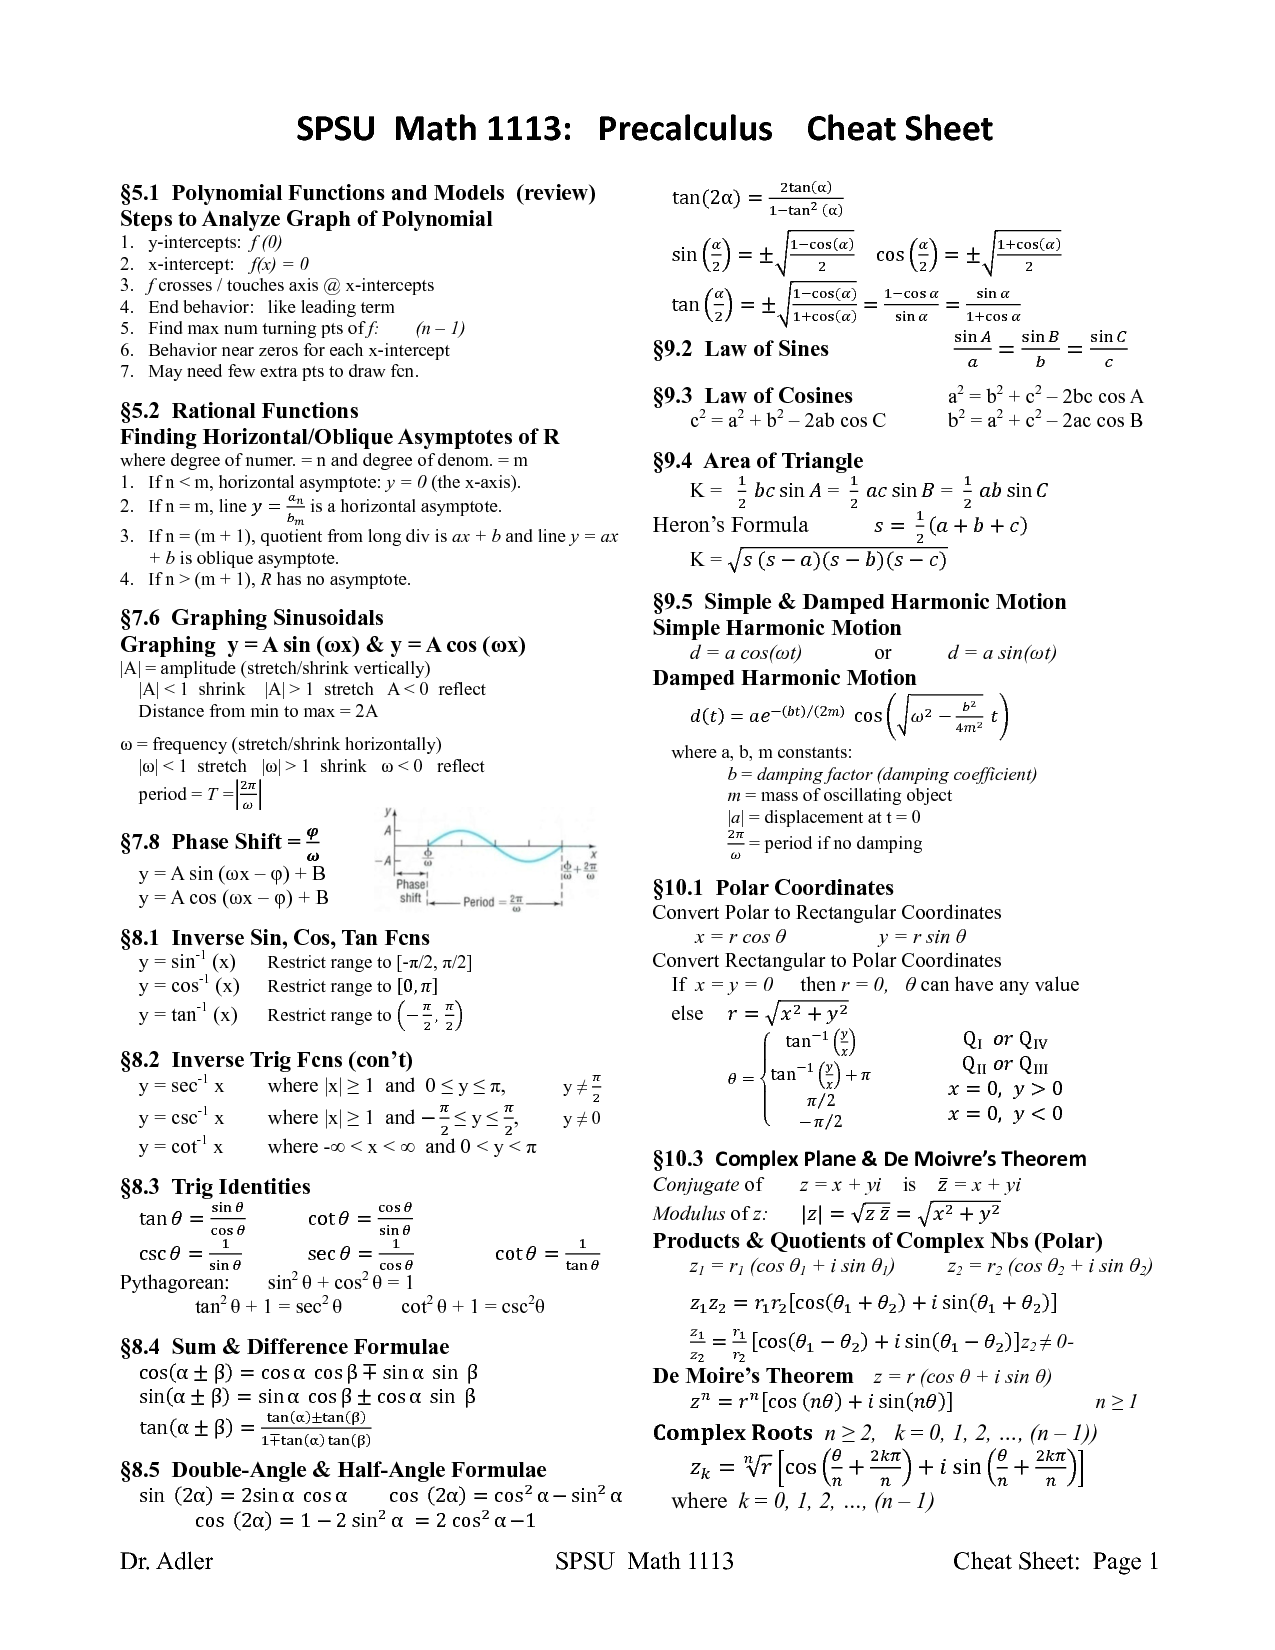 spsu math precalculus cheat sheet pdf pdf higher ed precalculus